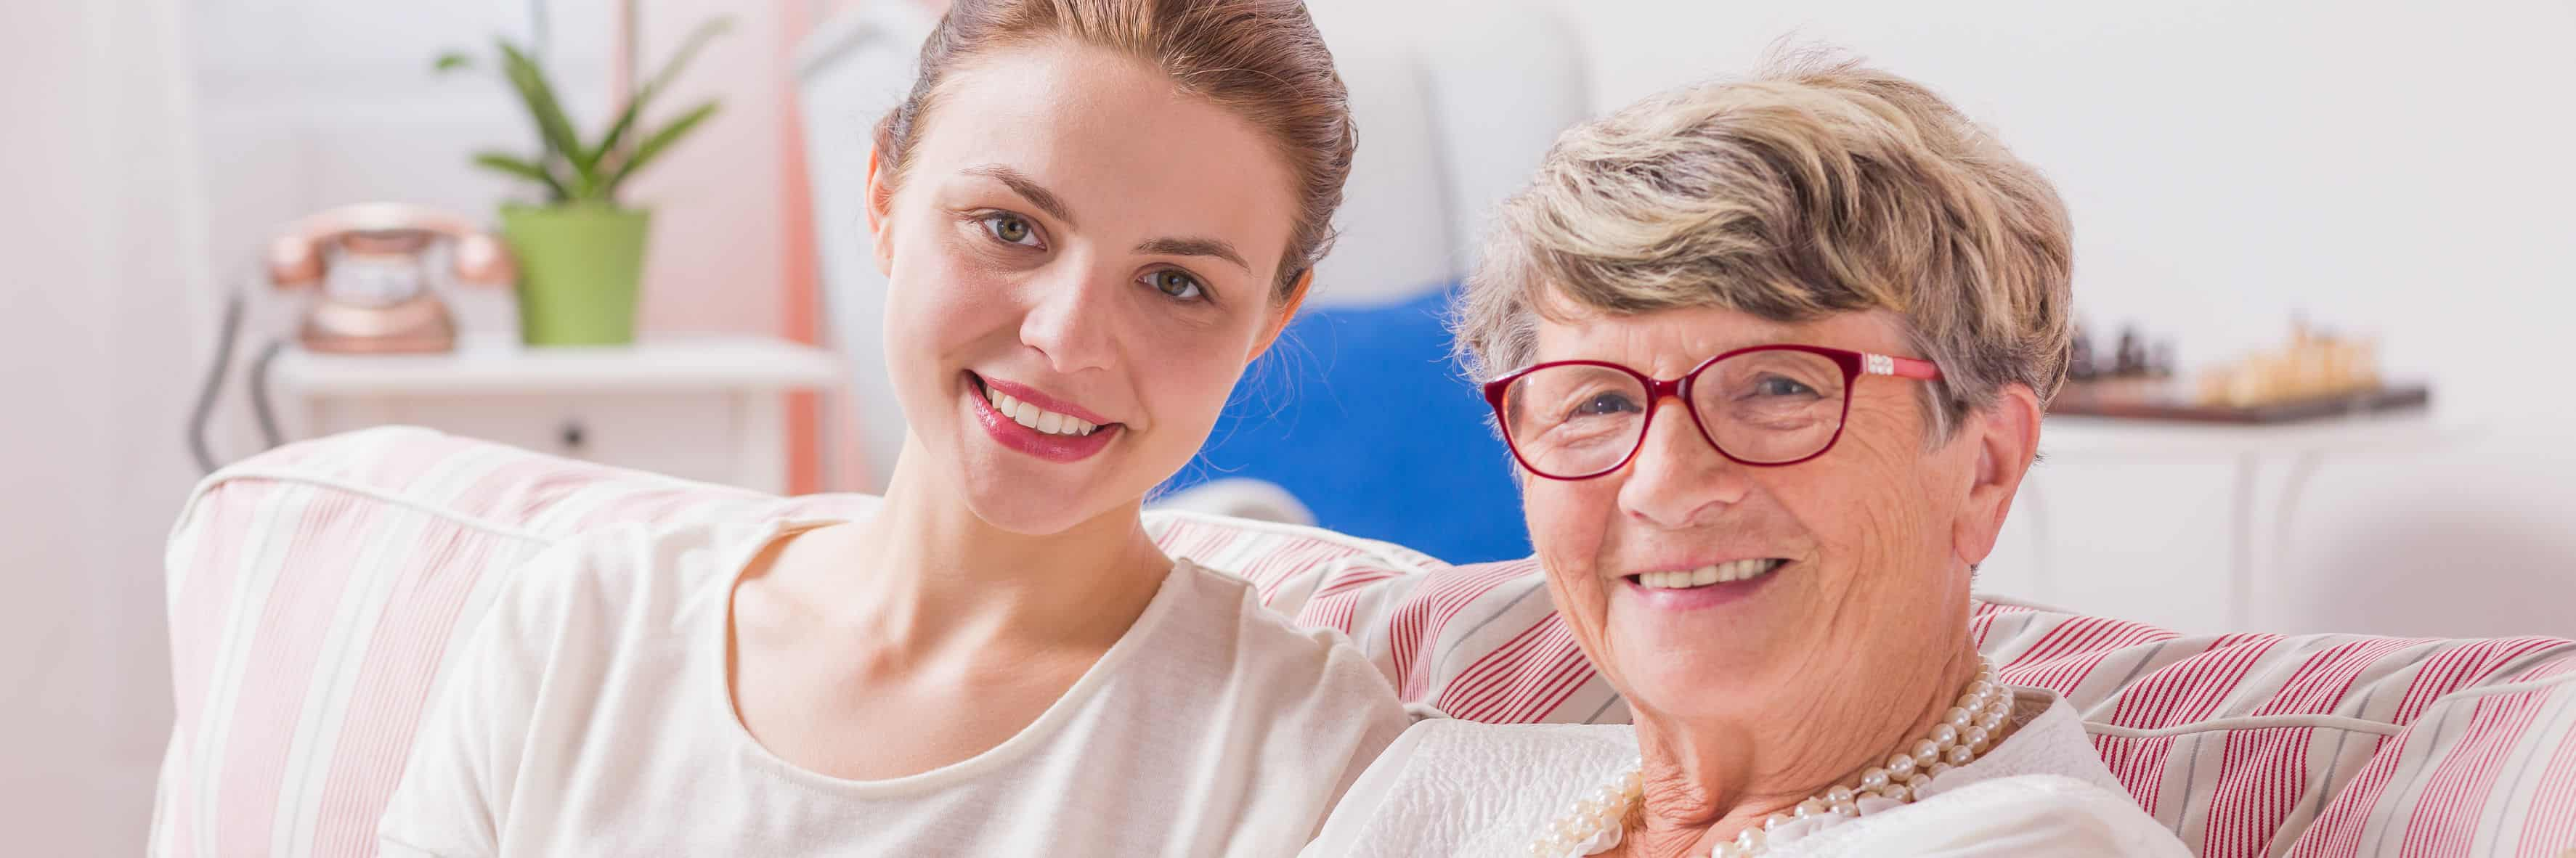 65560848 - happy daughter and her senior mother sitting together on a sofa, panorama